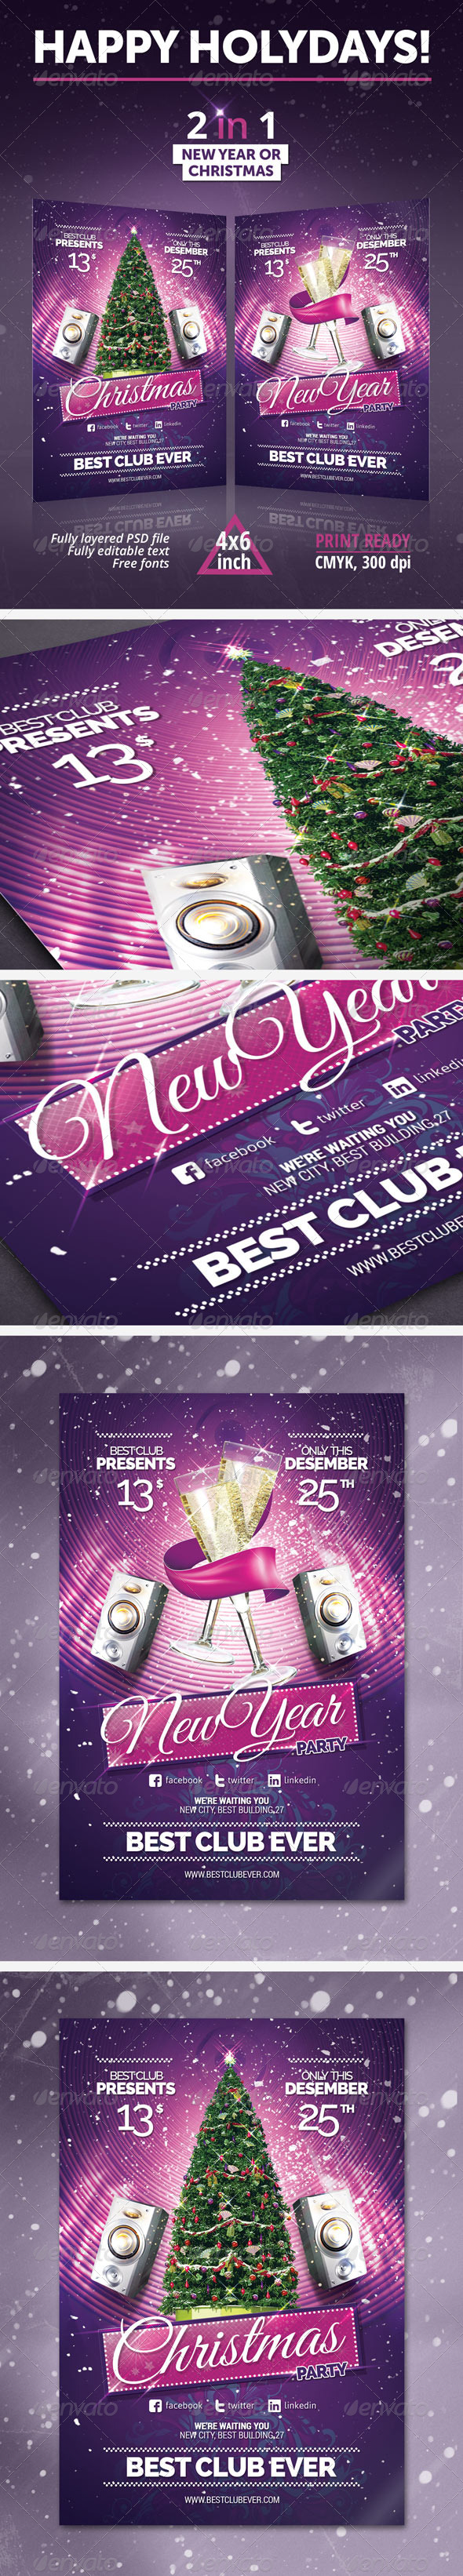 New Year, Christmas Party Flyer - Clubs & Parties Events